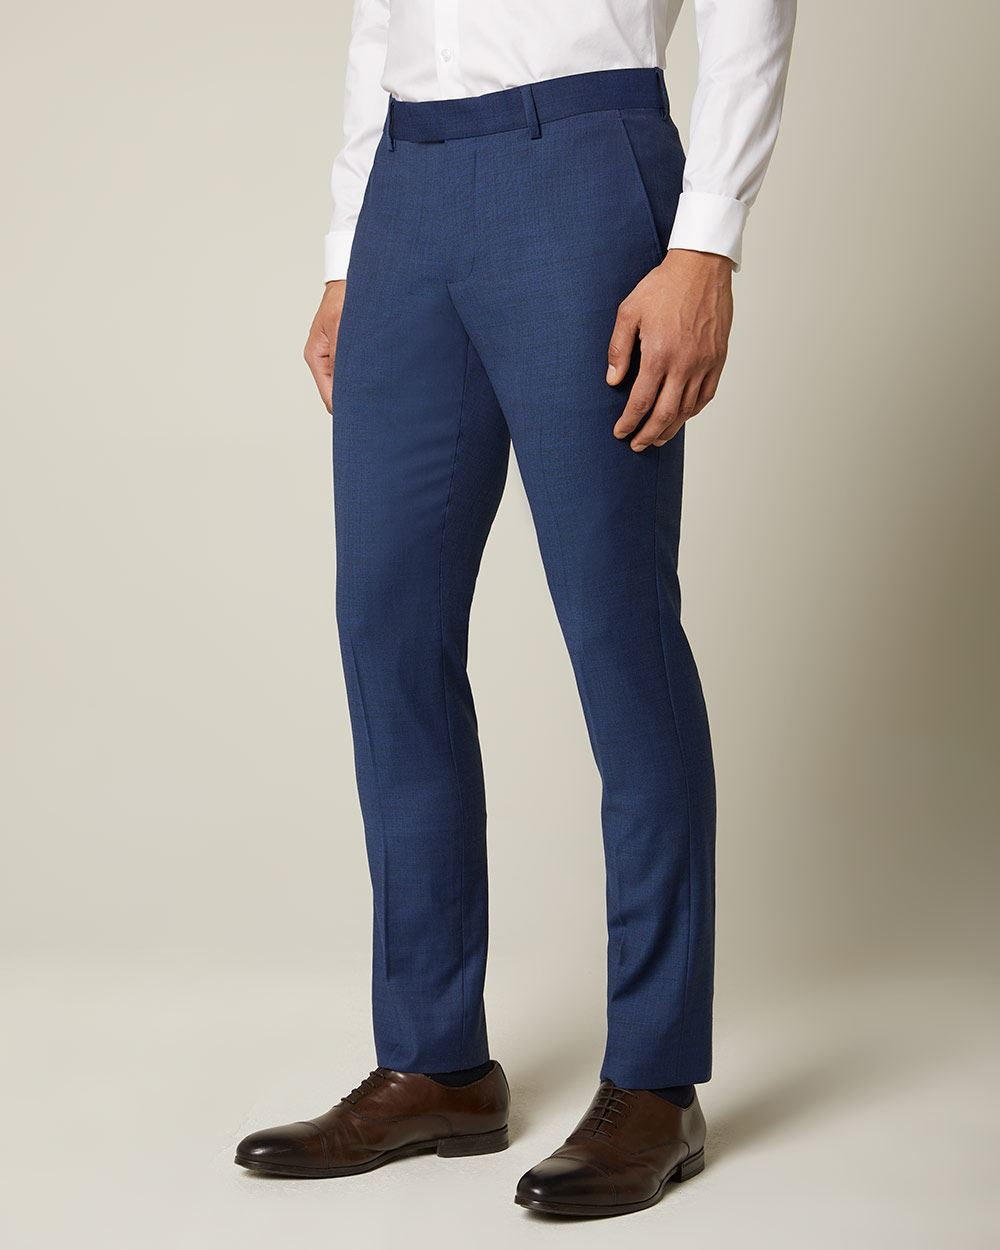 Essential Slim Fit blue wool-blend suit Pant